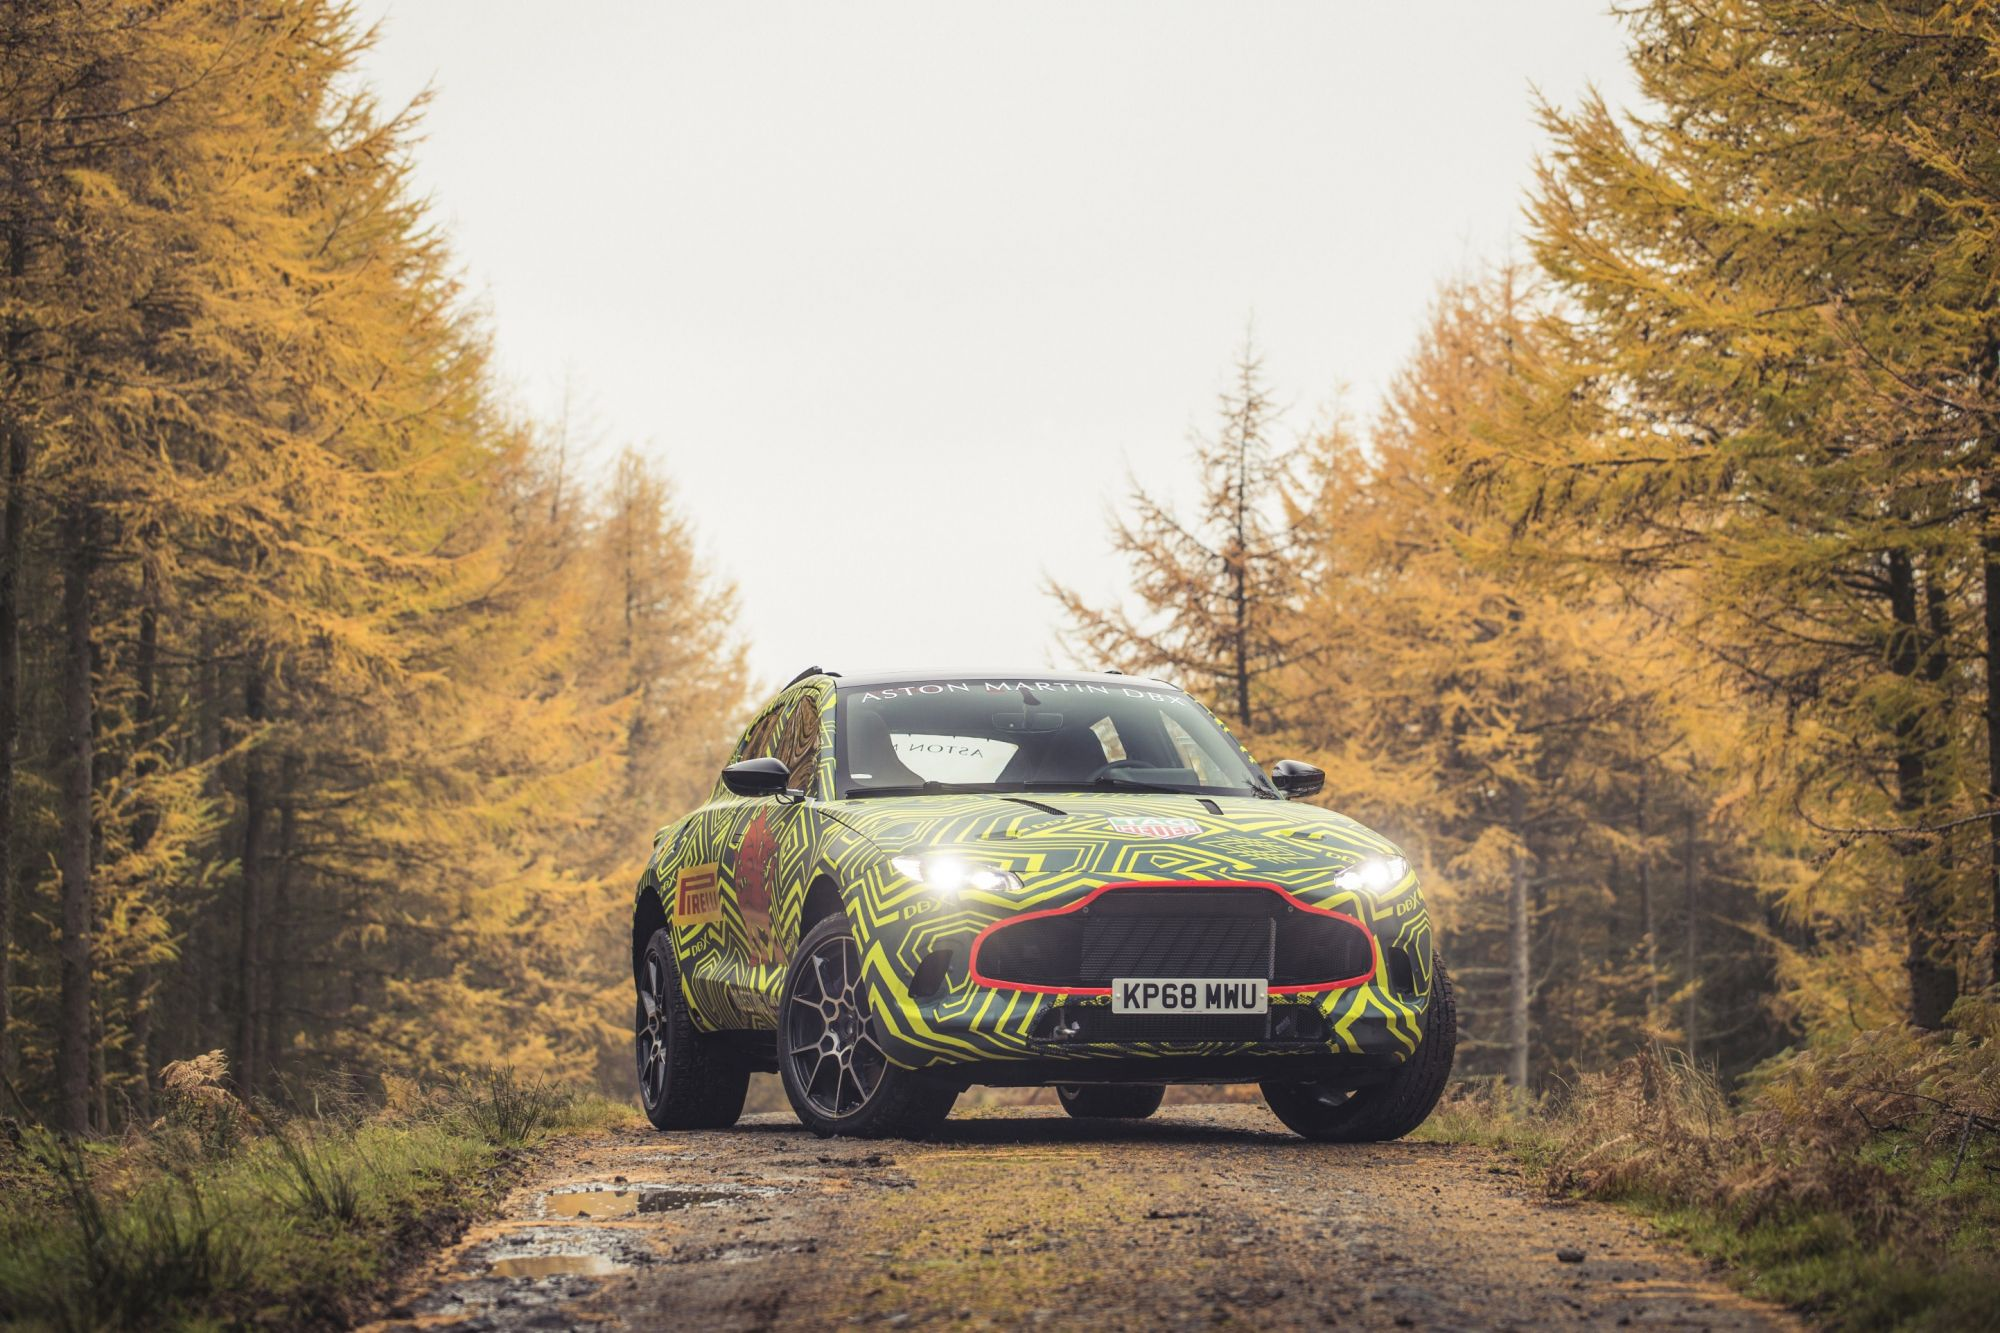 Aston Martin's Debut SUV Gets Put Through Its Paces